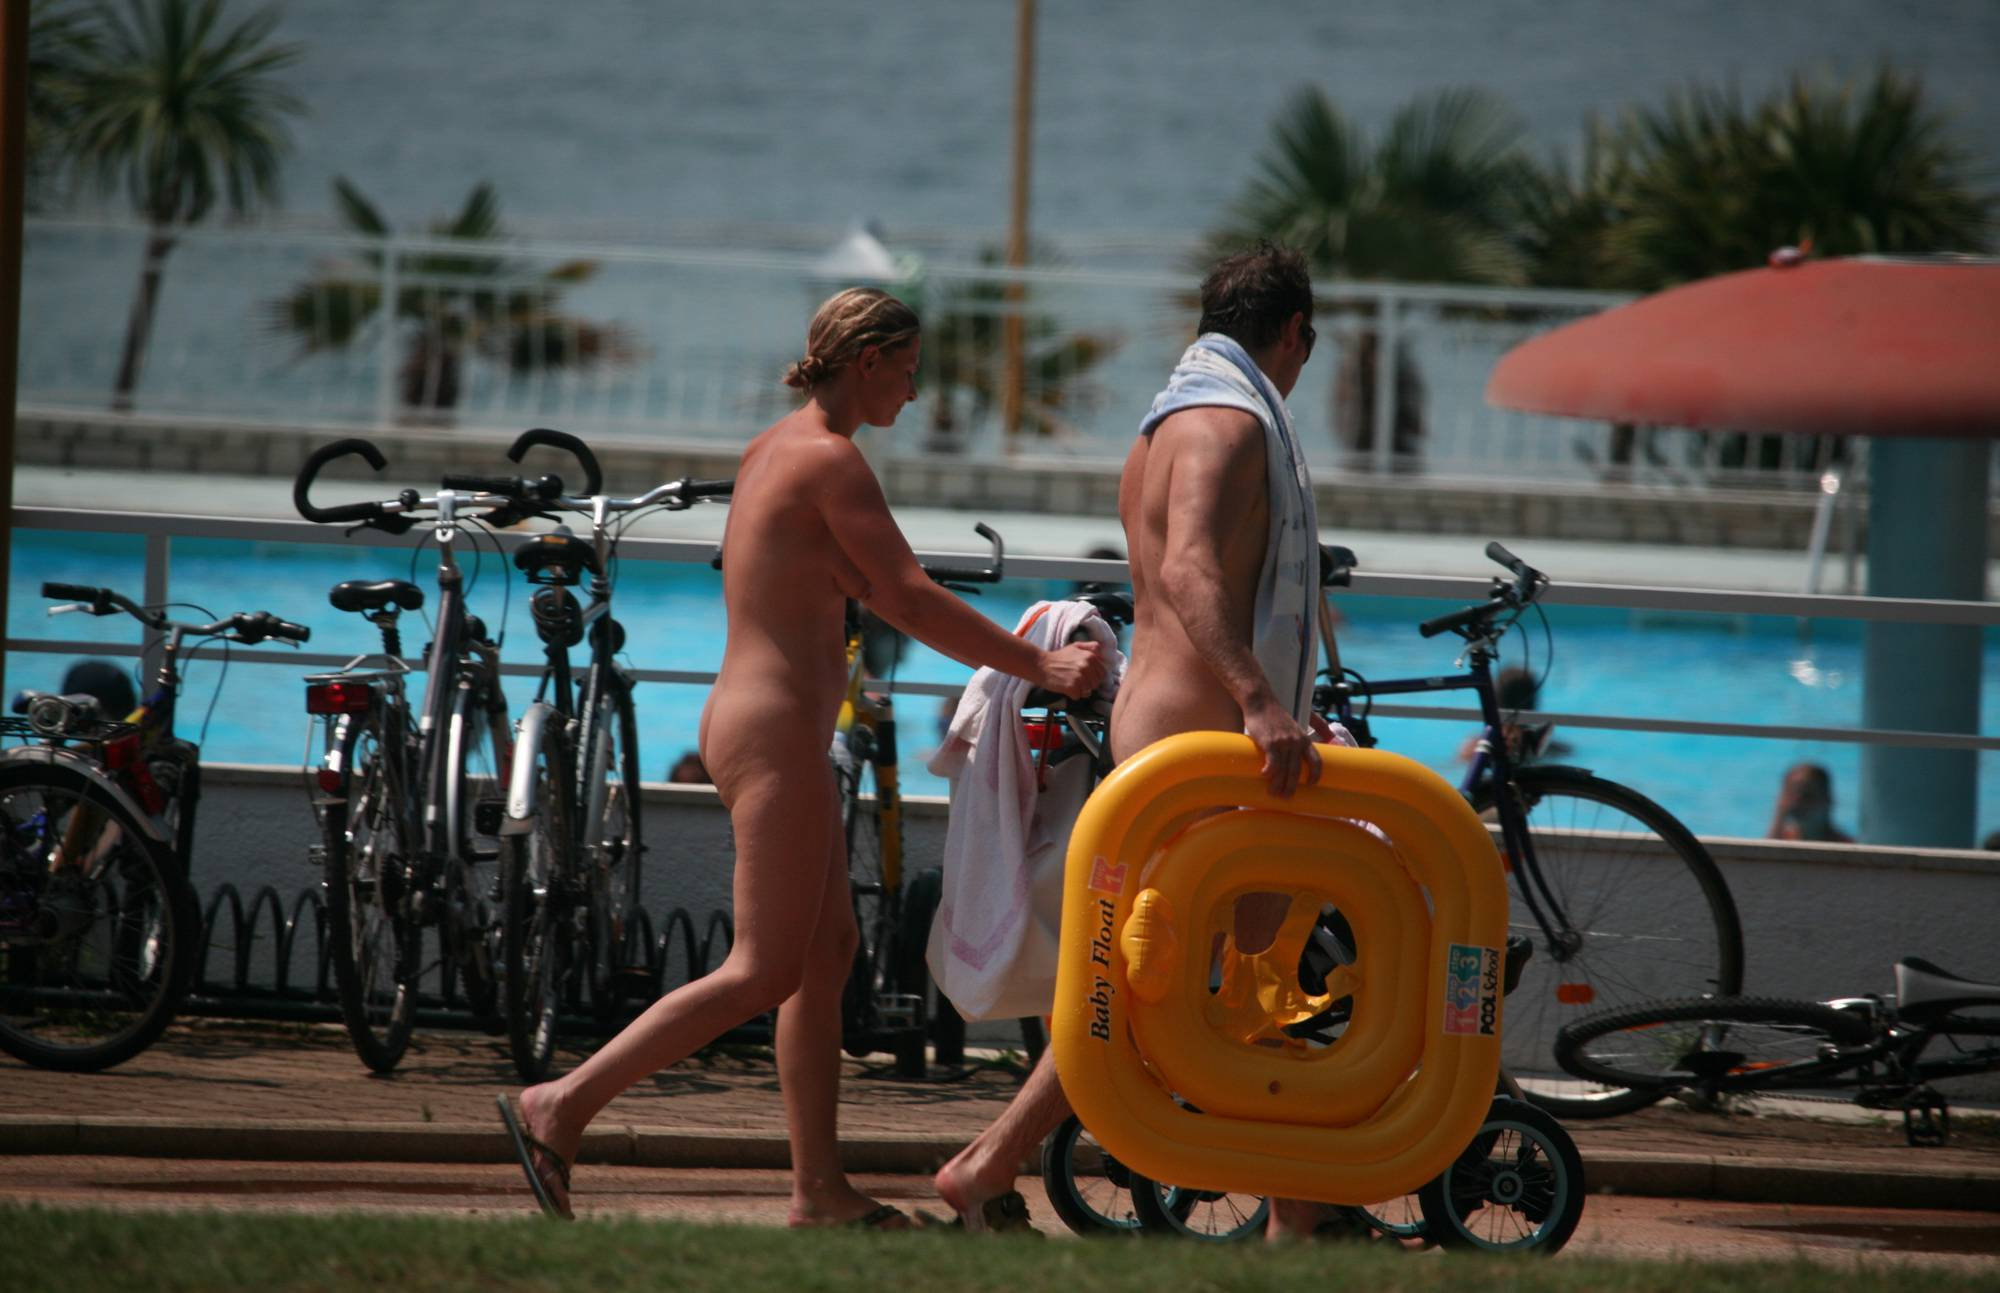 Pure Nudism Images-Poolside Camp Gathering - 4